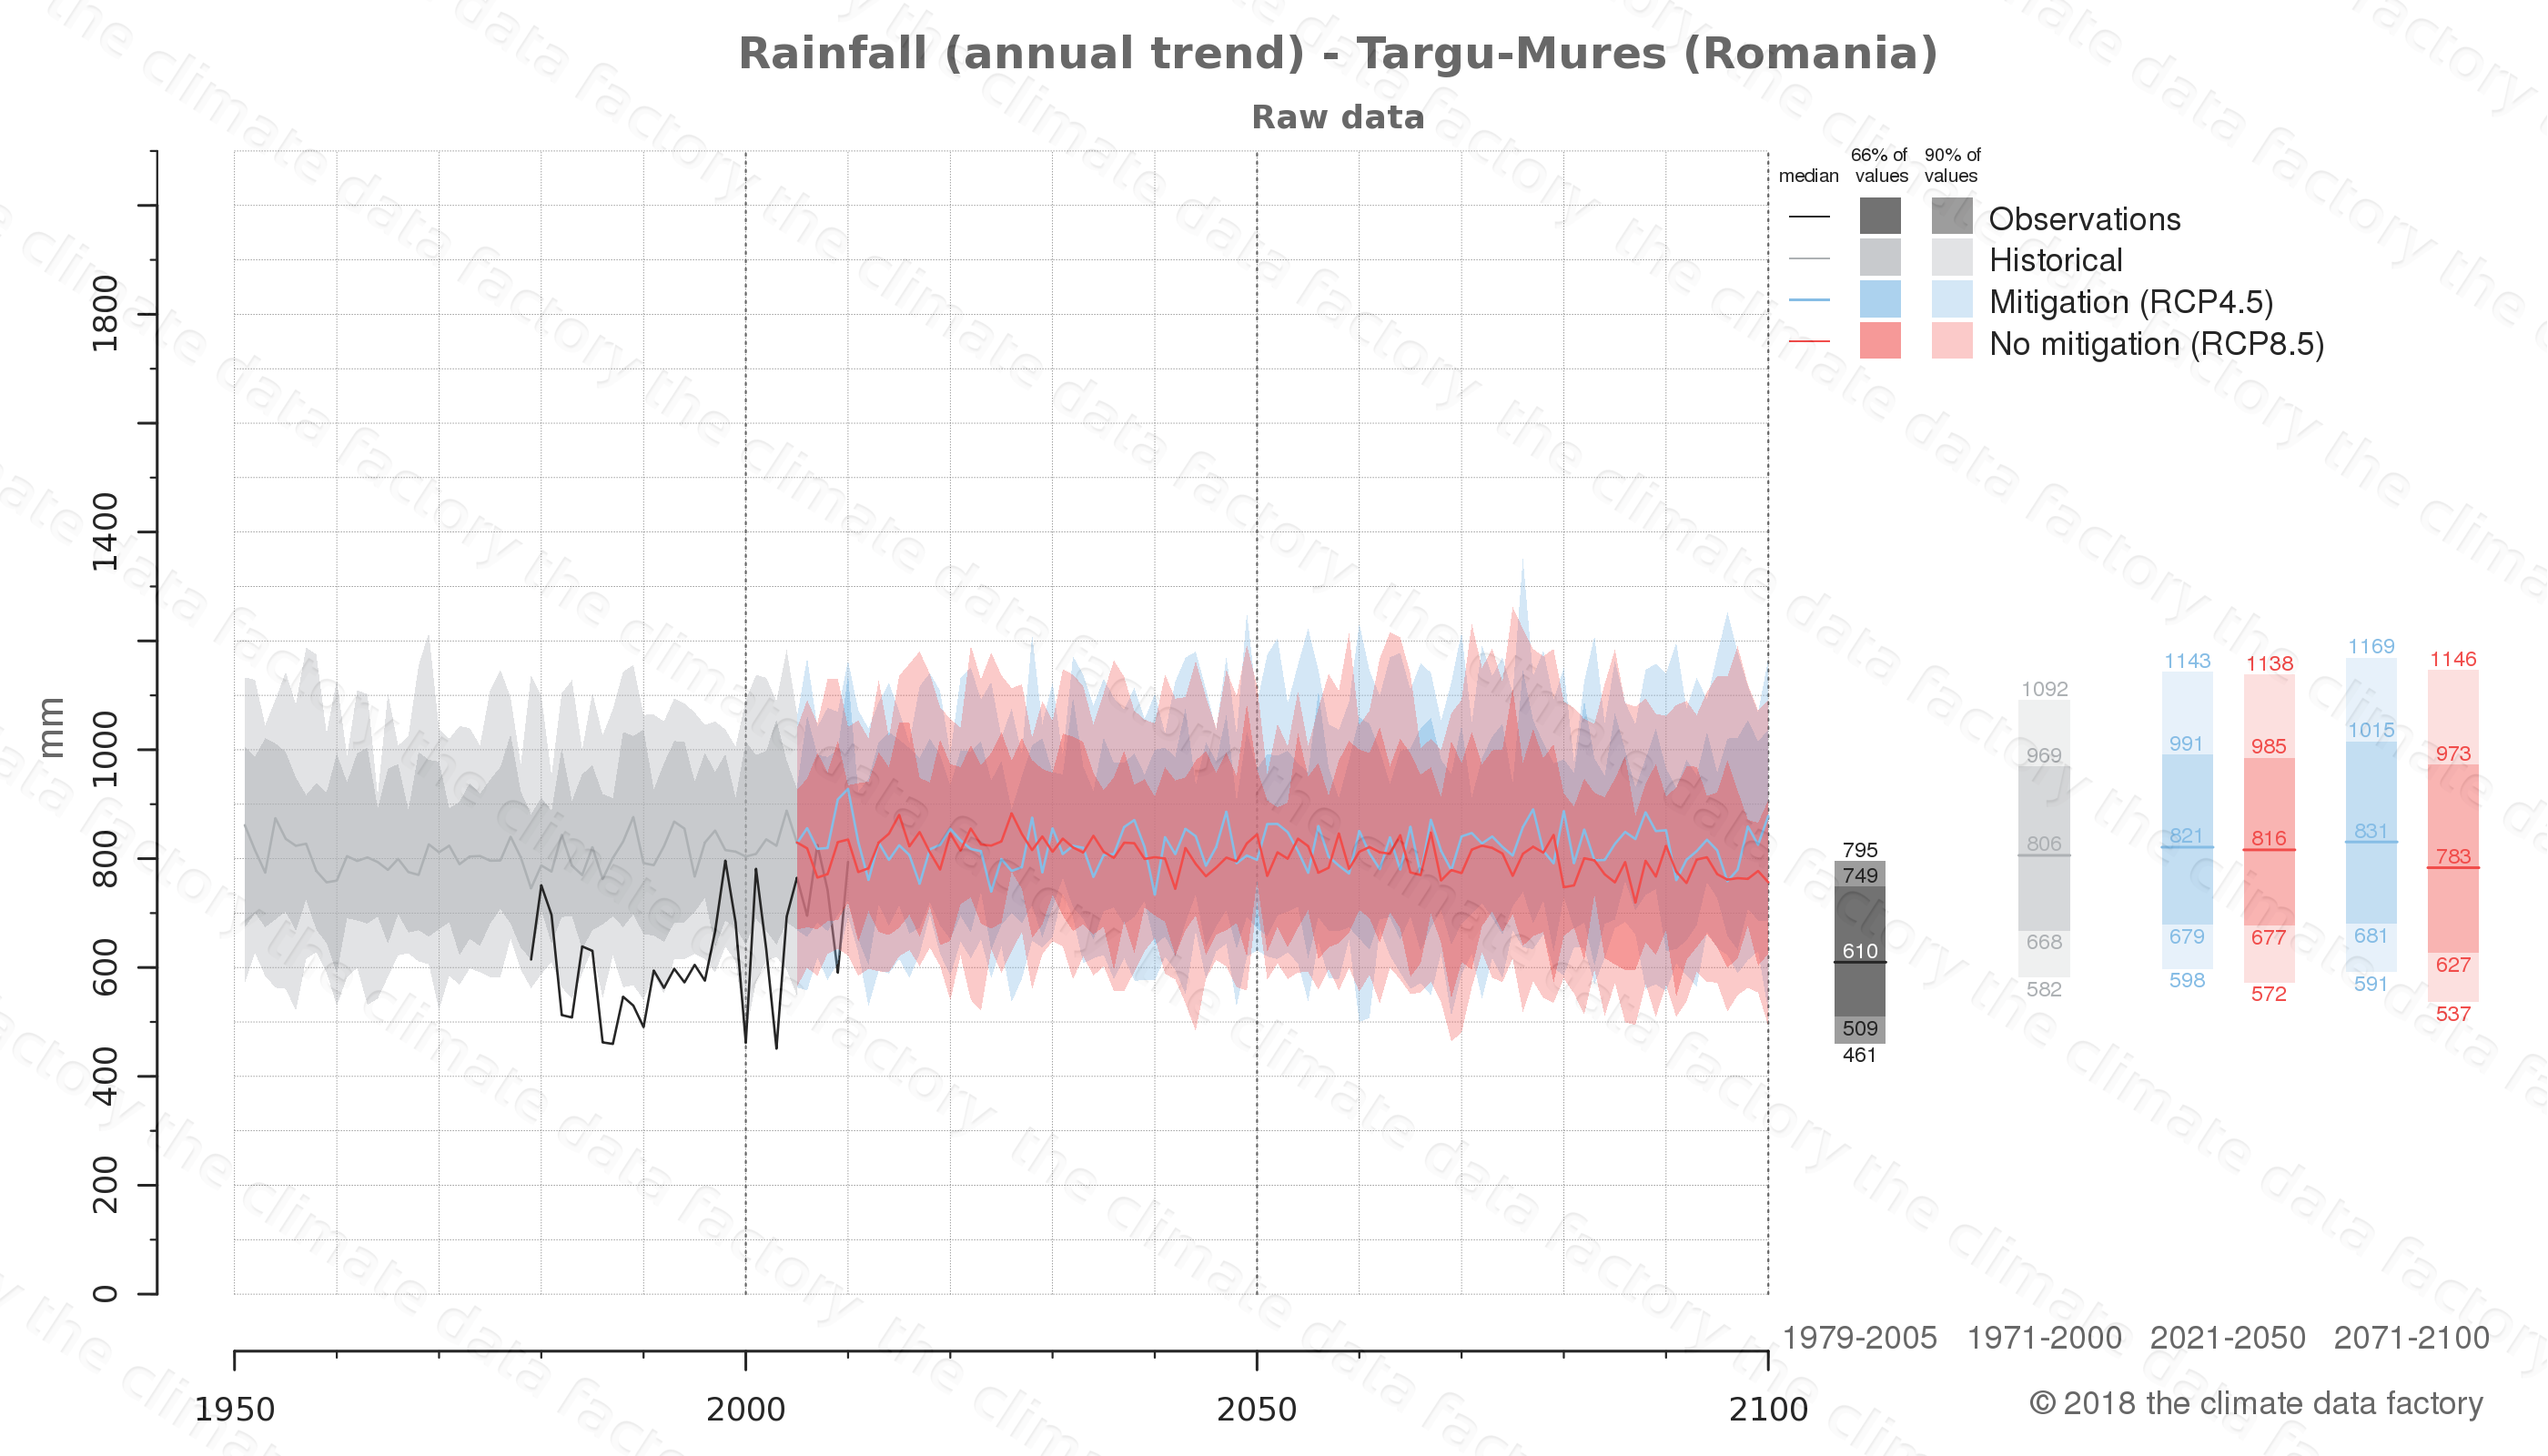 climate change data policy adaptation climate graph city data rainfall targu-mures romania